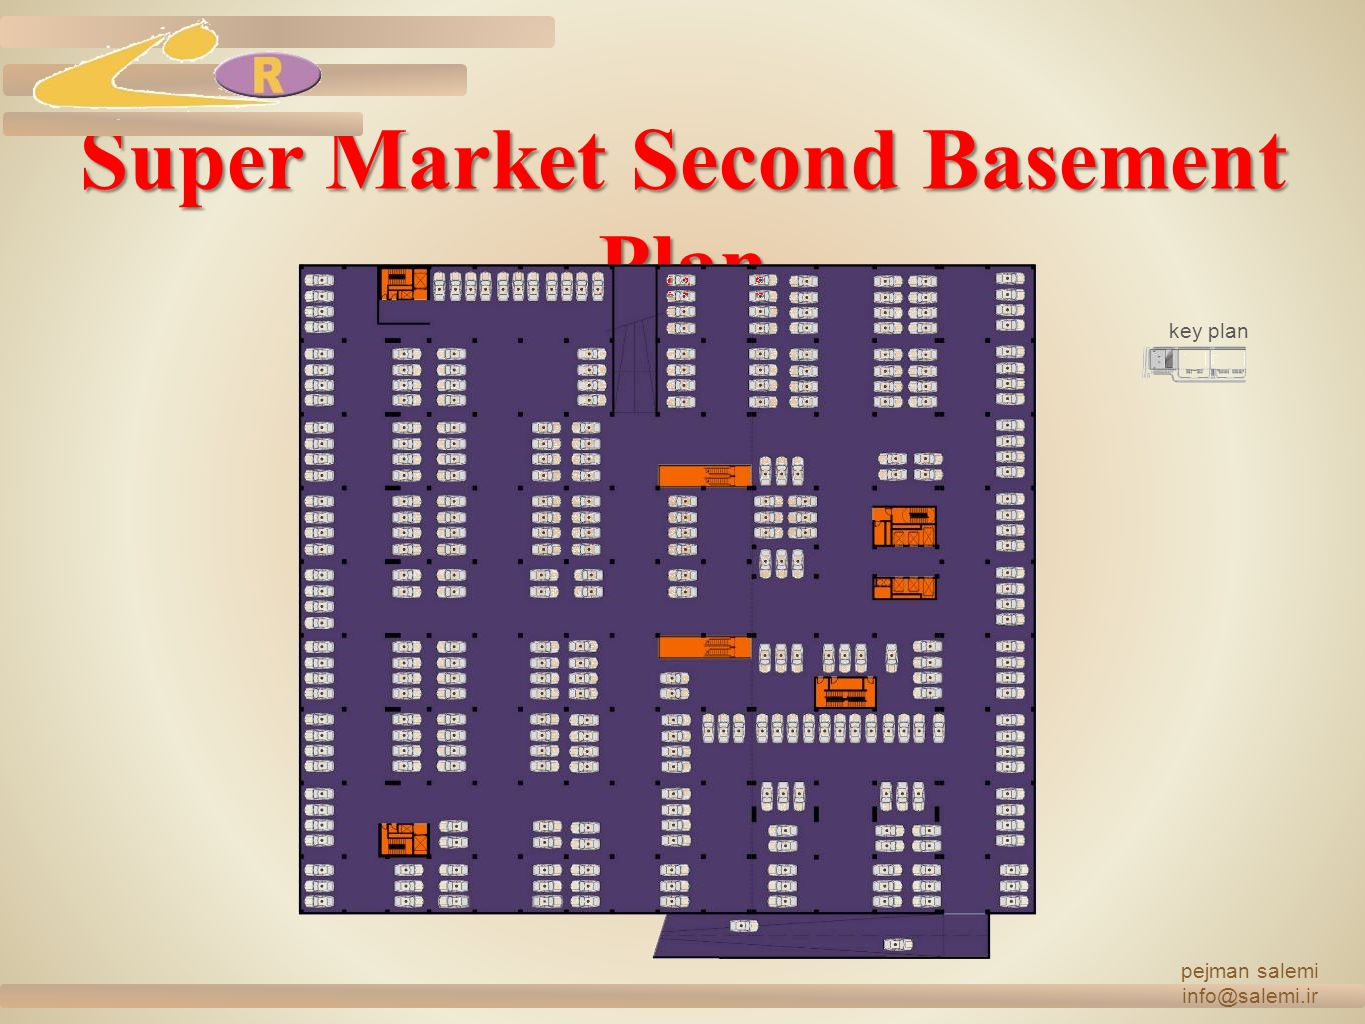 Super Market Second Basement Plan